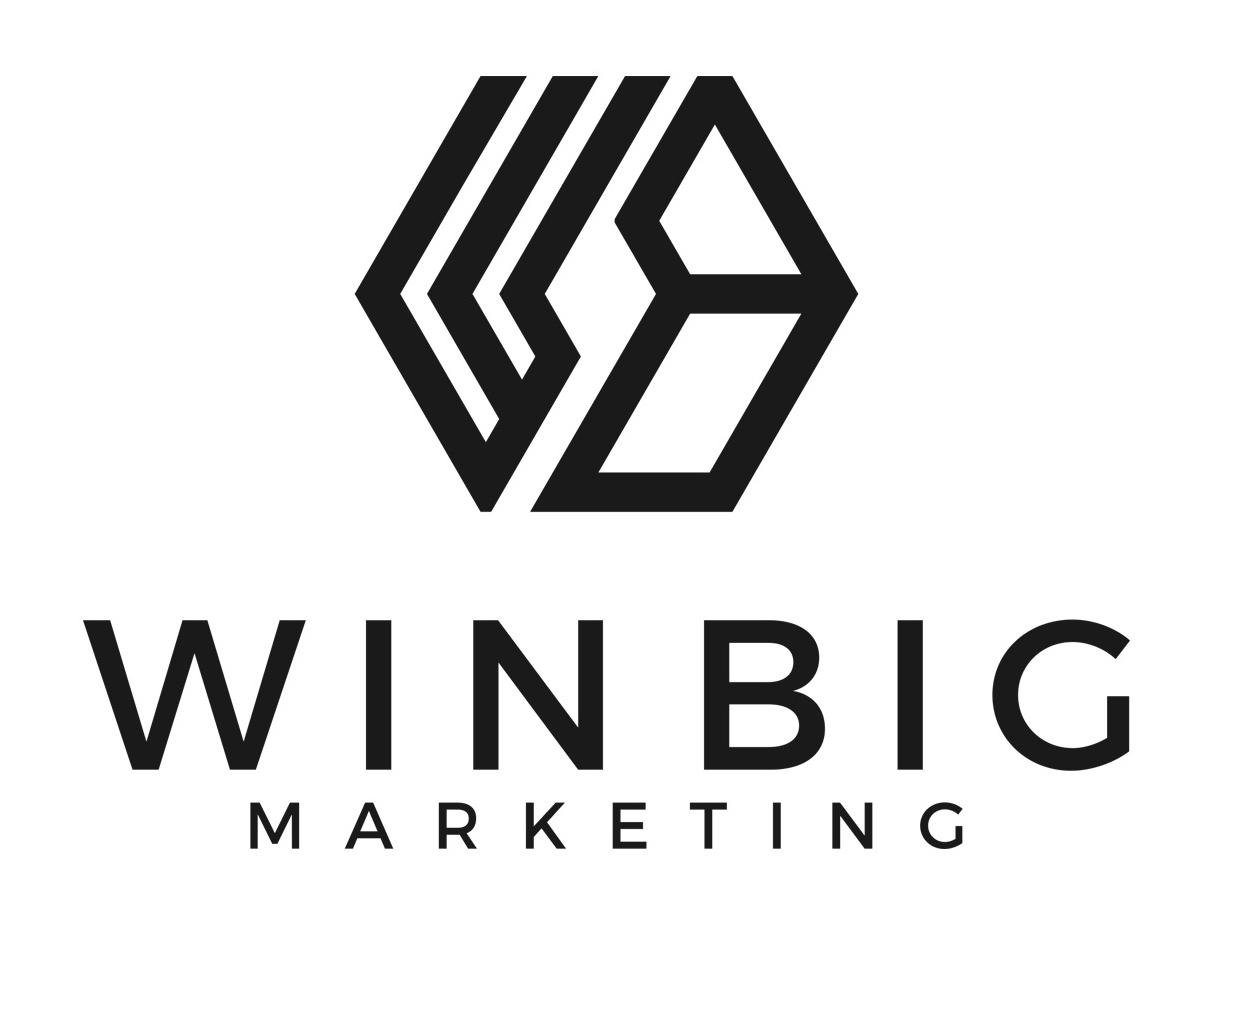 Win Big Marketing